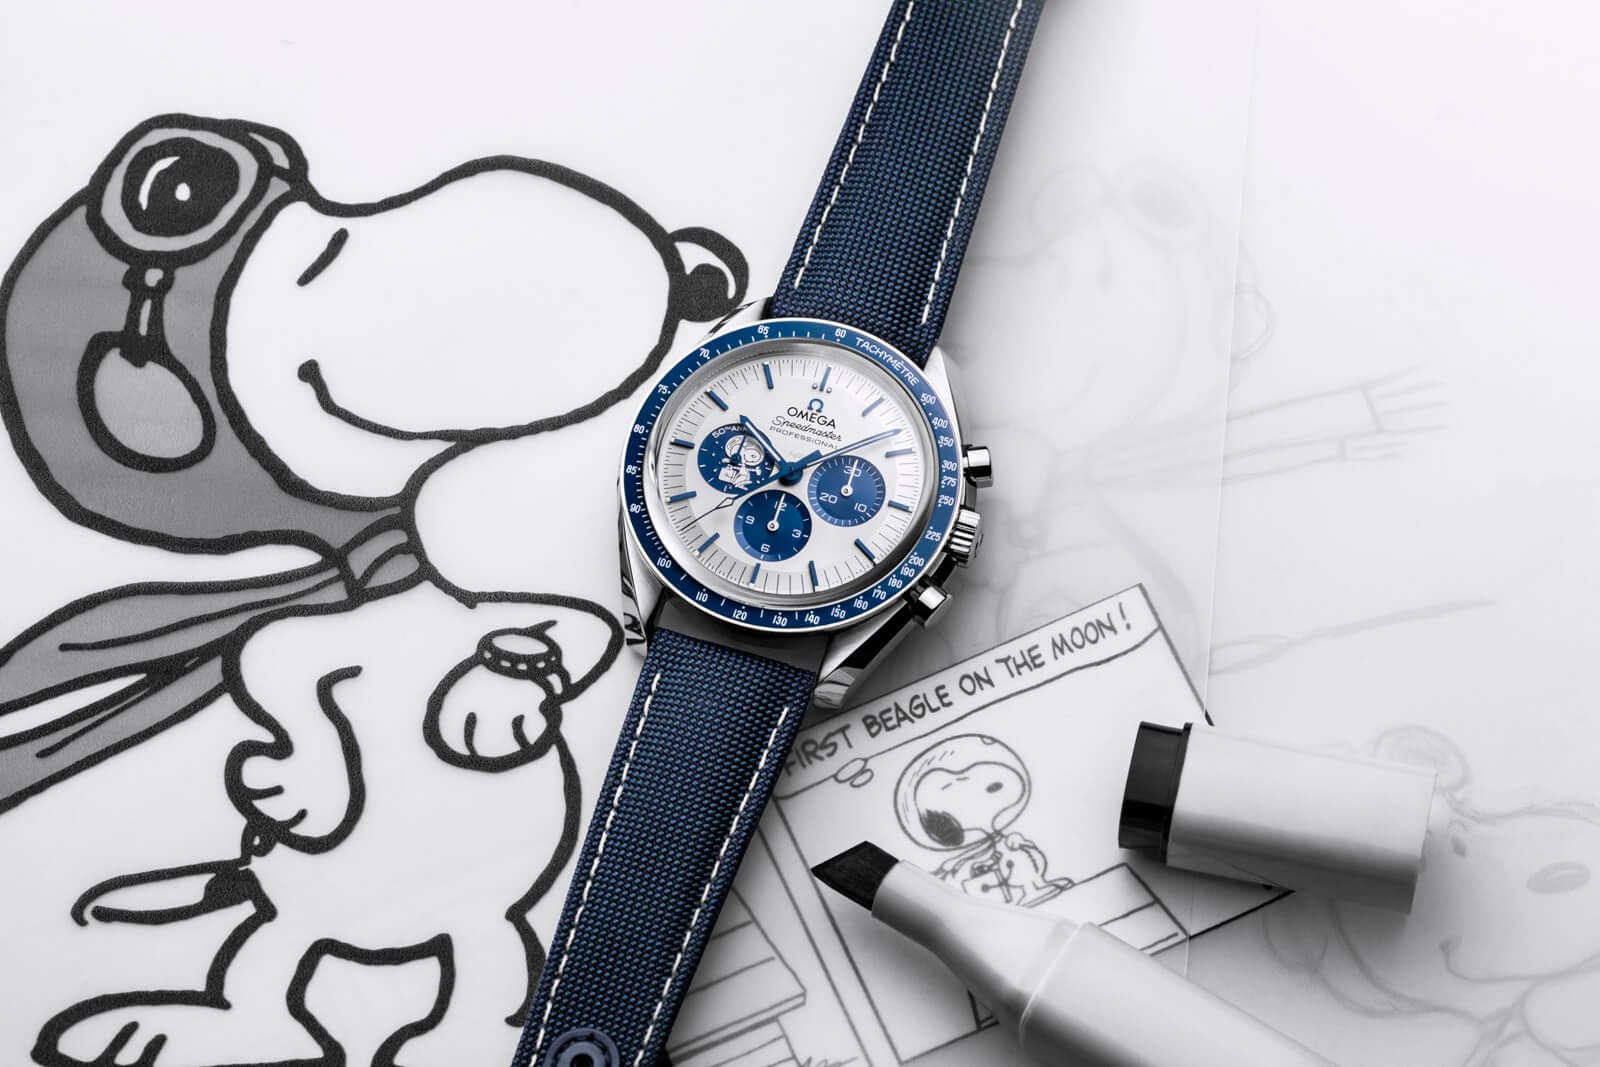 The Omega Speedmaster Silver Snoopy Award 50th Anniversary